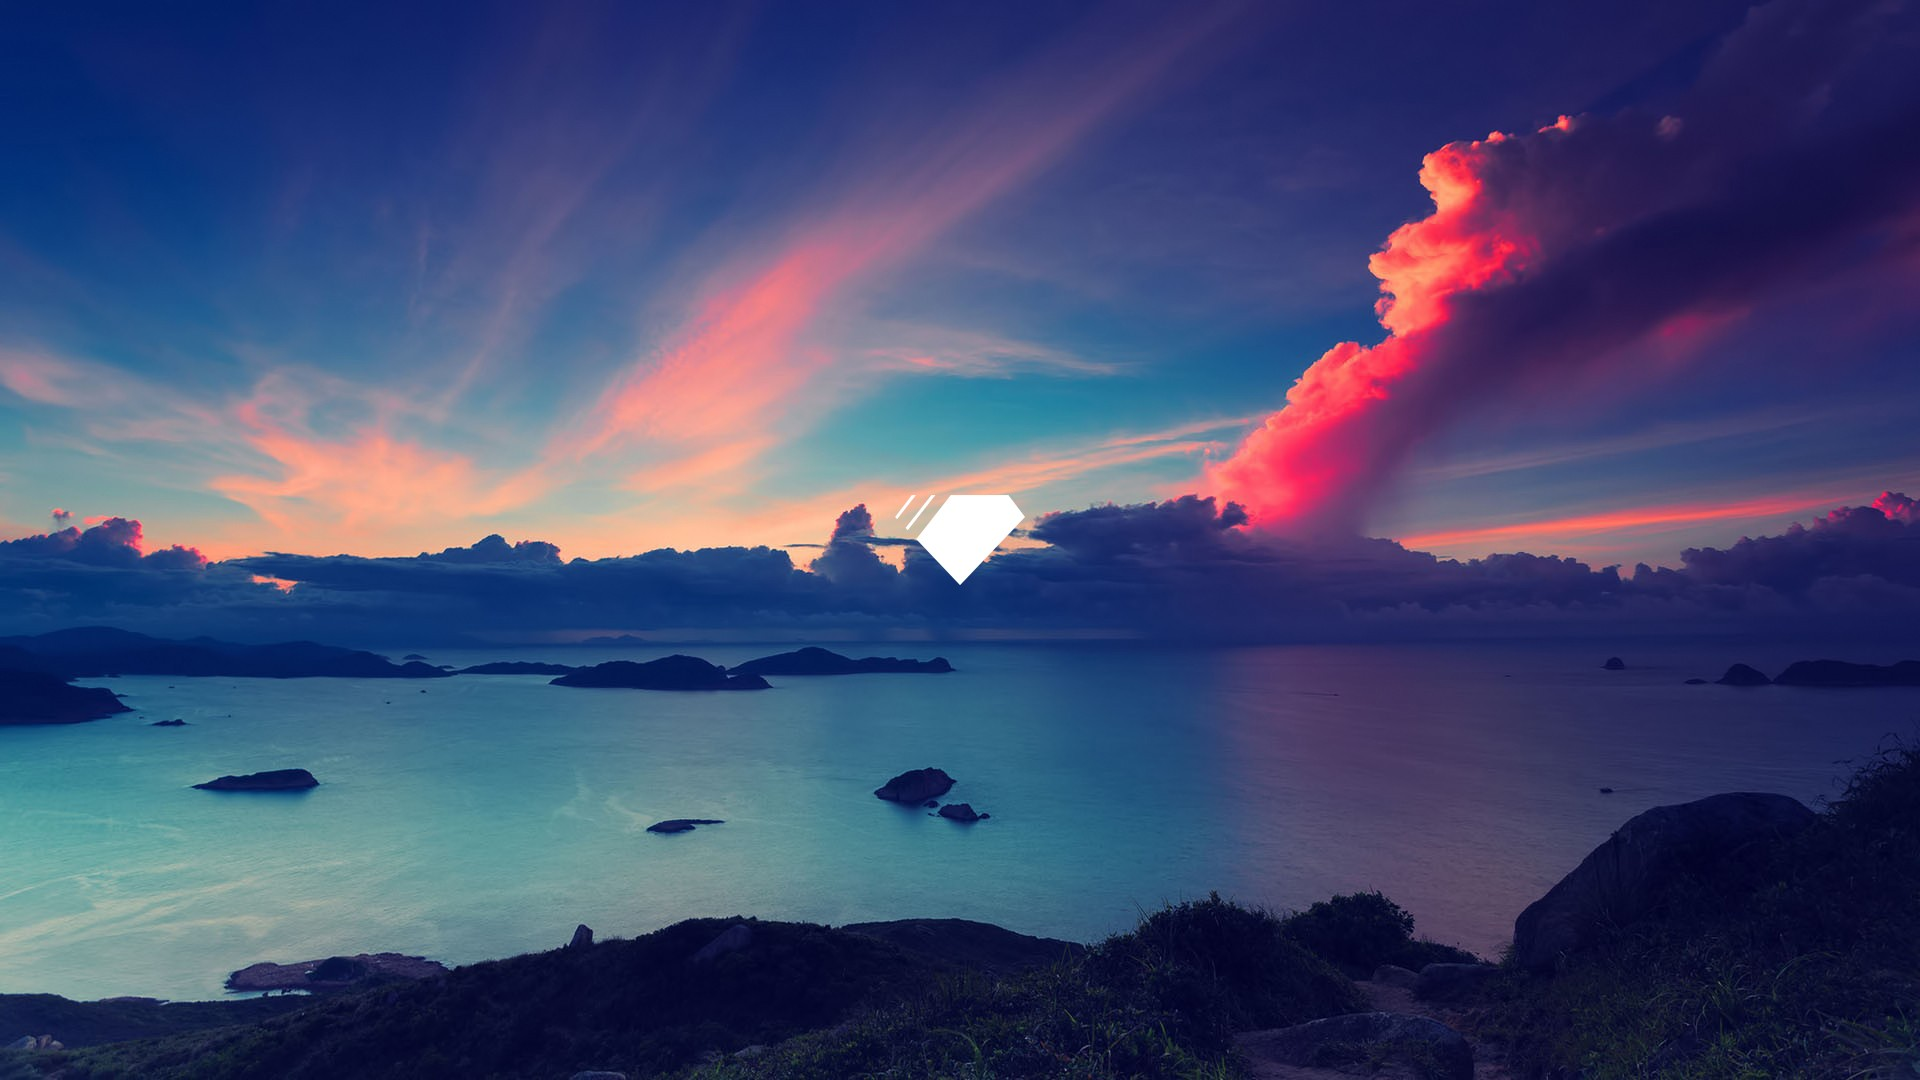 General 1920x1080 sky blue water nature outdoors